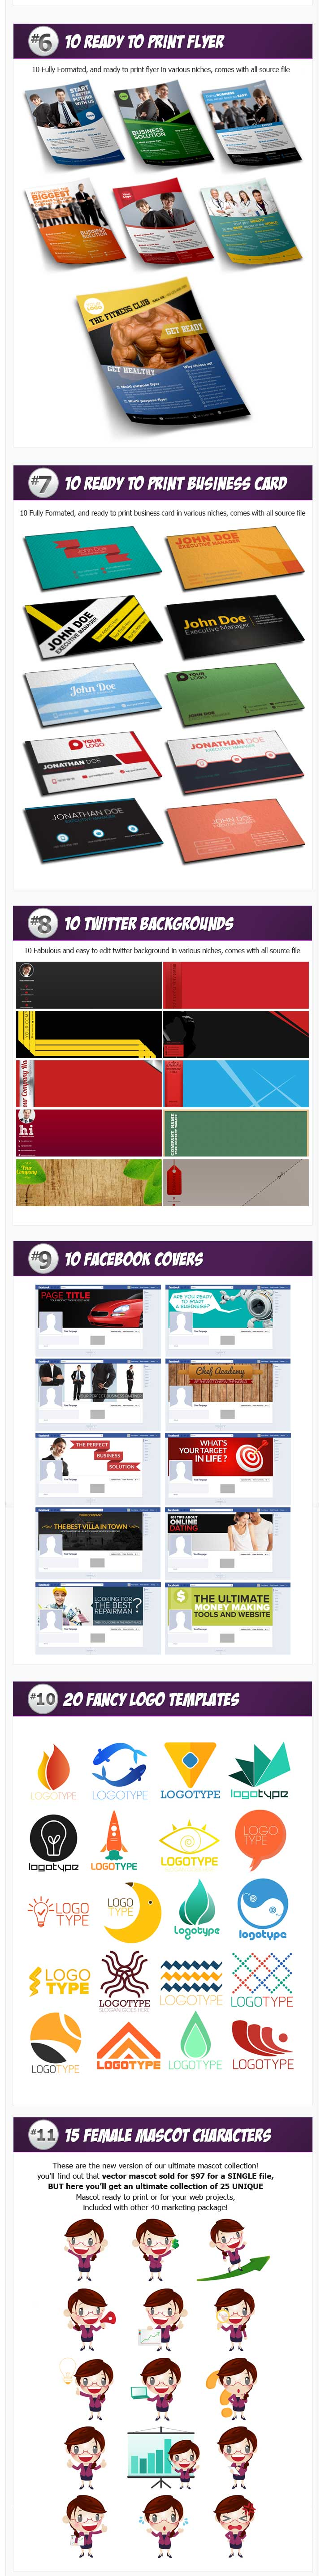 giant marketing kit graphics vol 2. - Product Elements